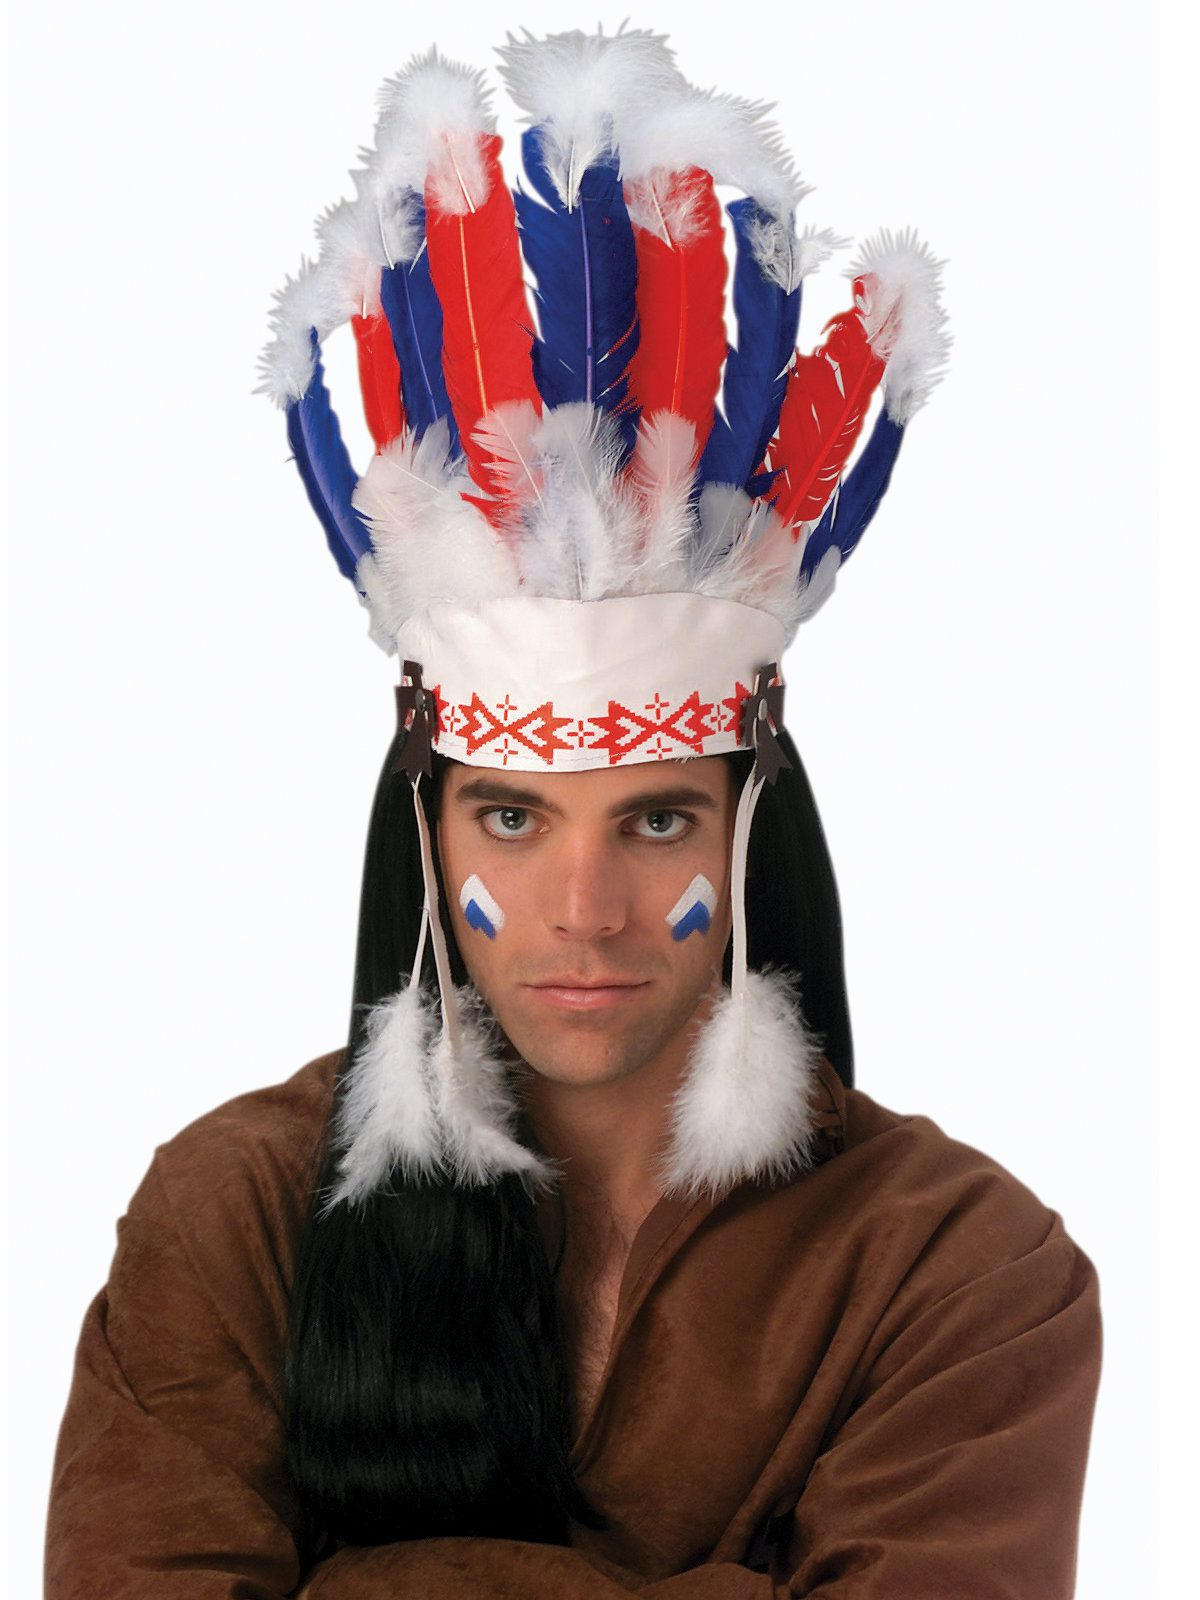 6a3d6cd4fac Native American Headdress - Costume Accessories for 2018